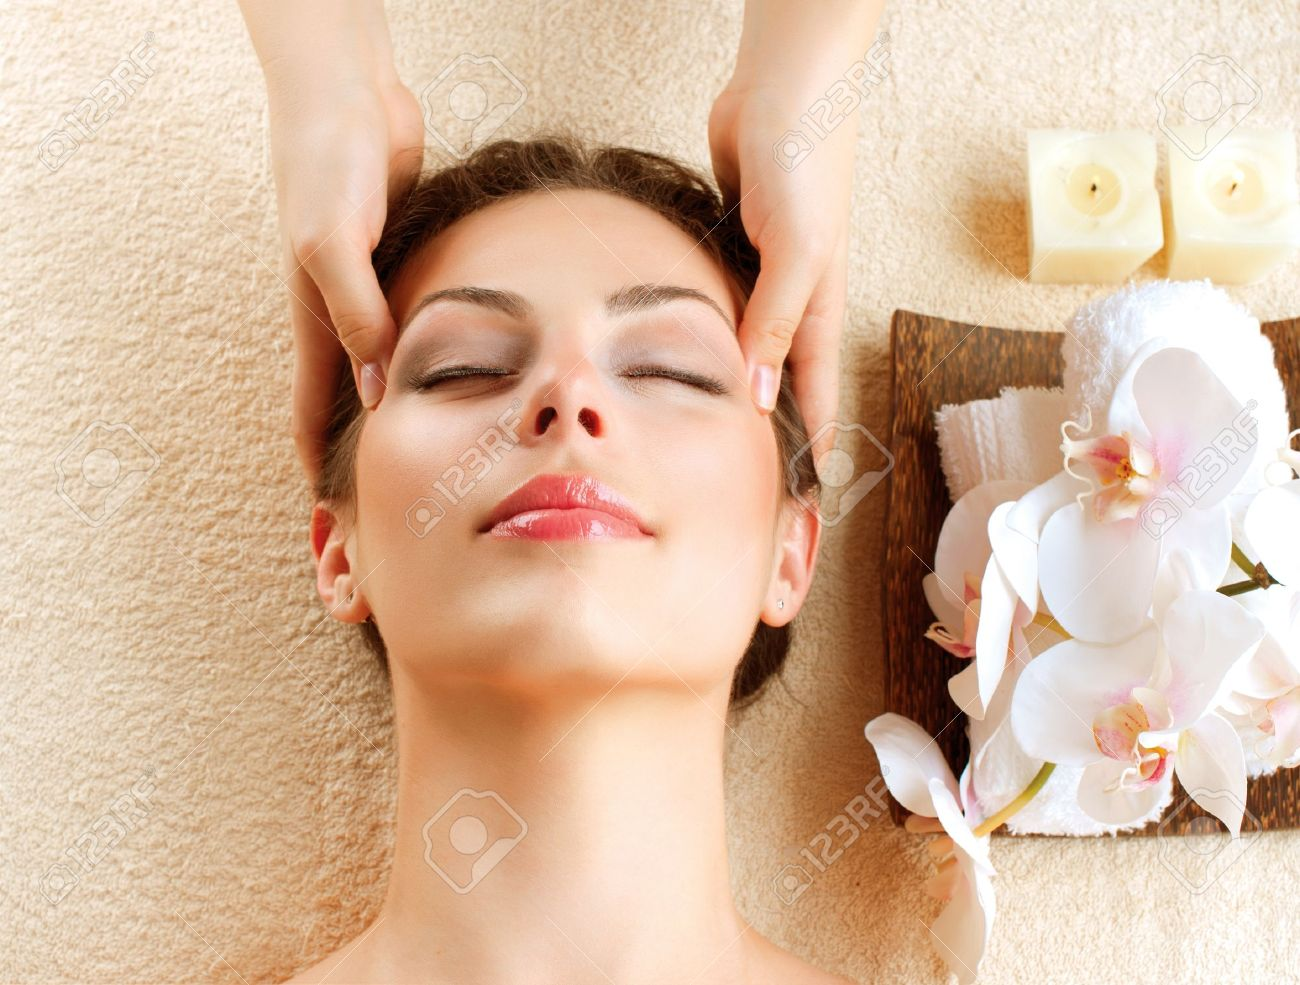 Spa Massage  Young Woman Getting Facial Massage Stock Photo - 17416396